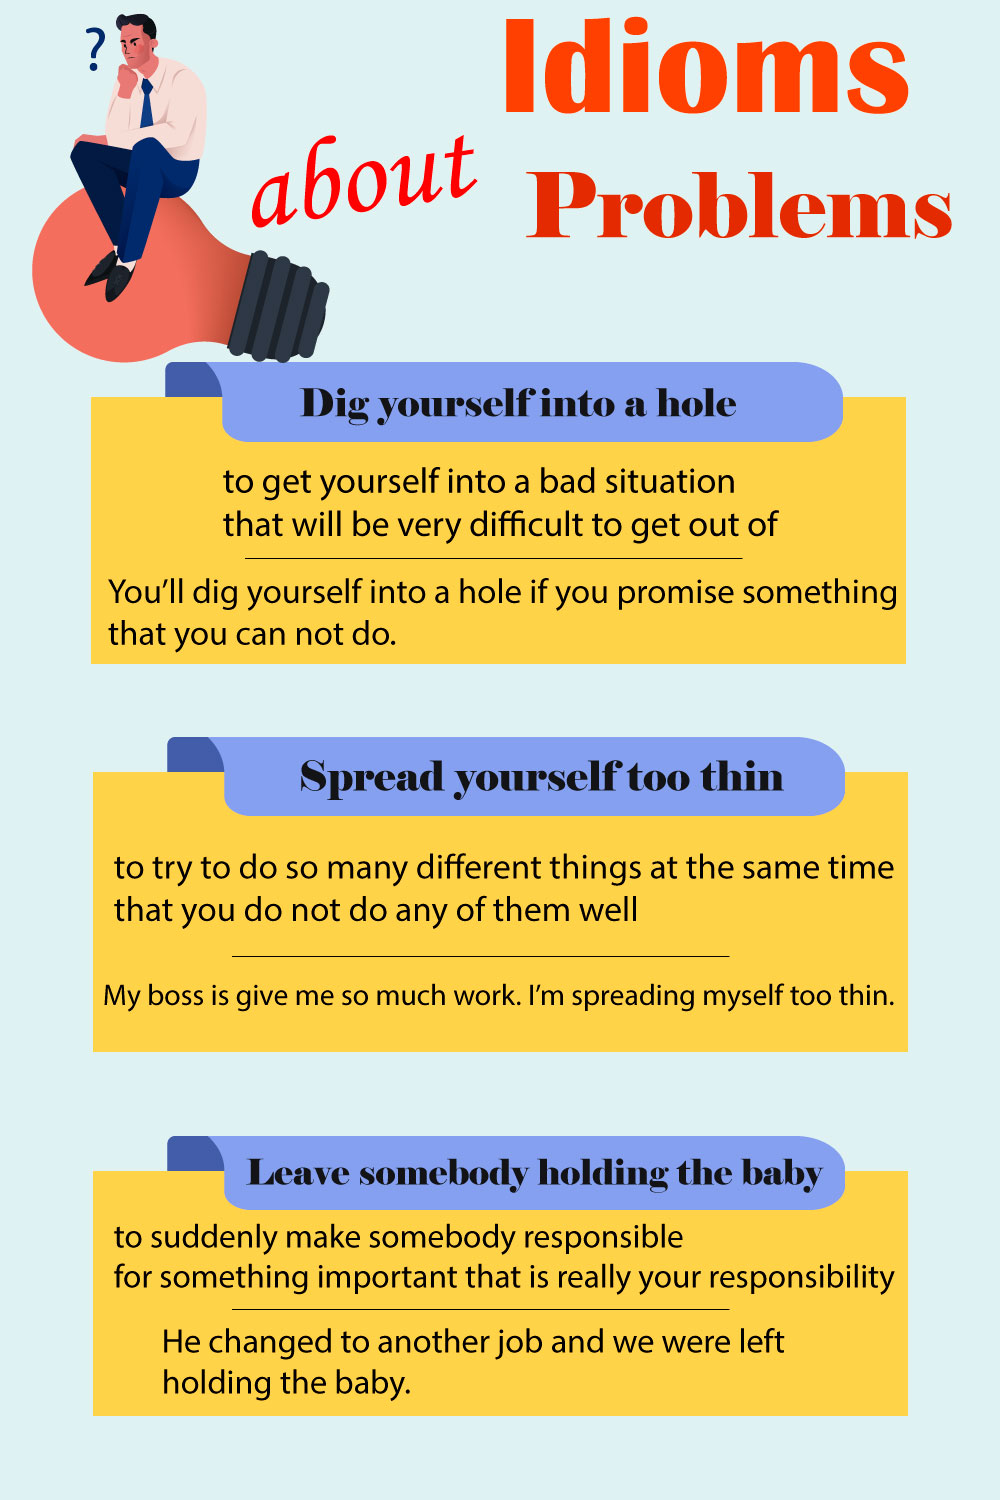 Idioms about problems